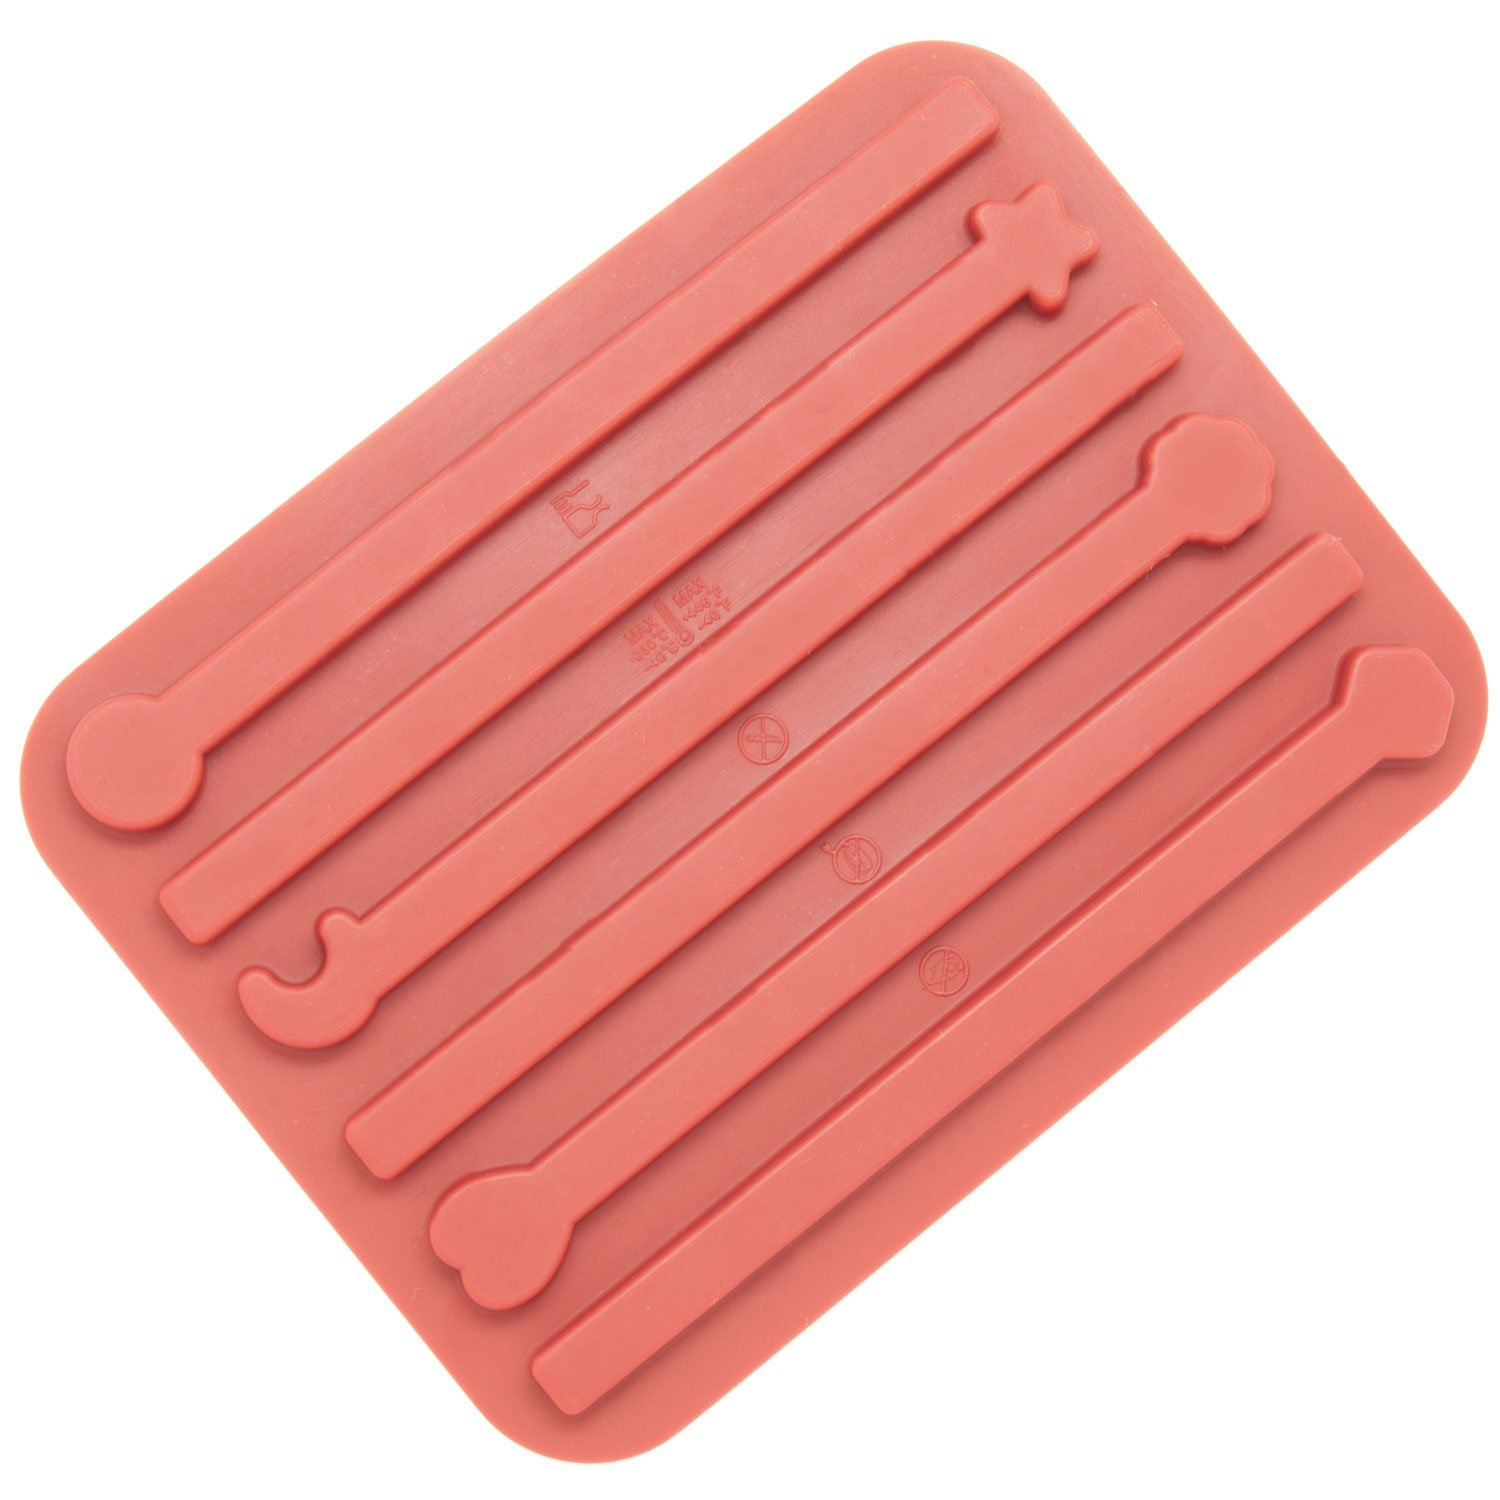 Freshware CB-602RD 6-Cavity Silicone Stick Chocolate Candy and Gummy Mold Inc